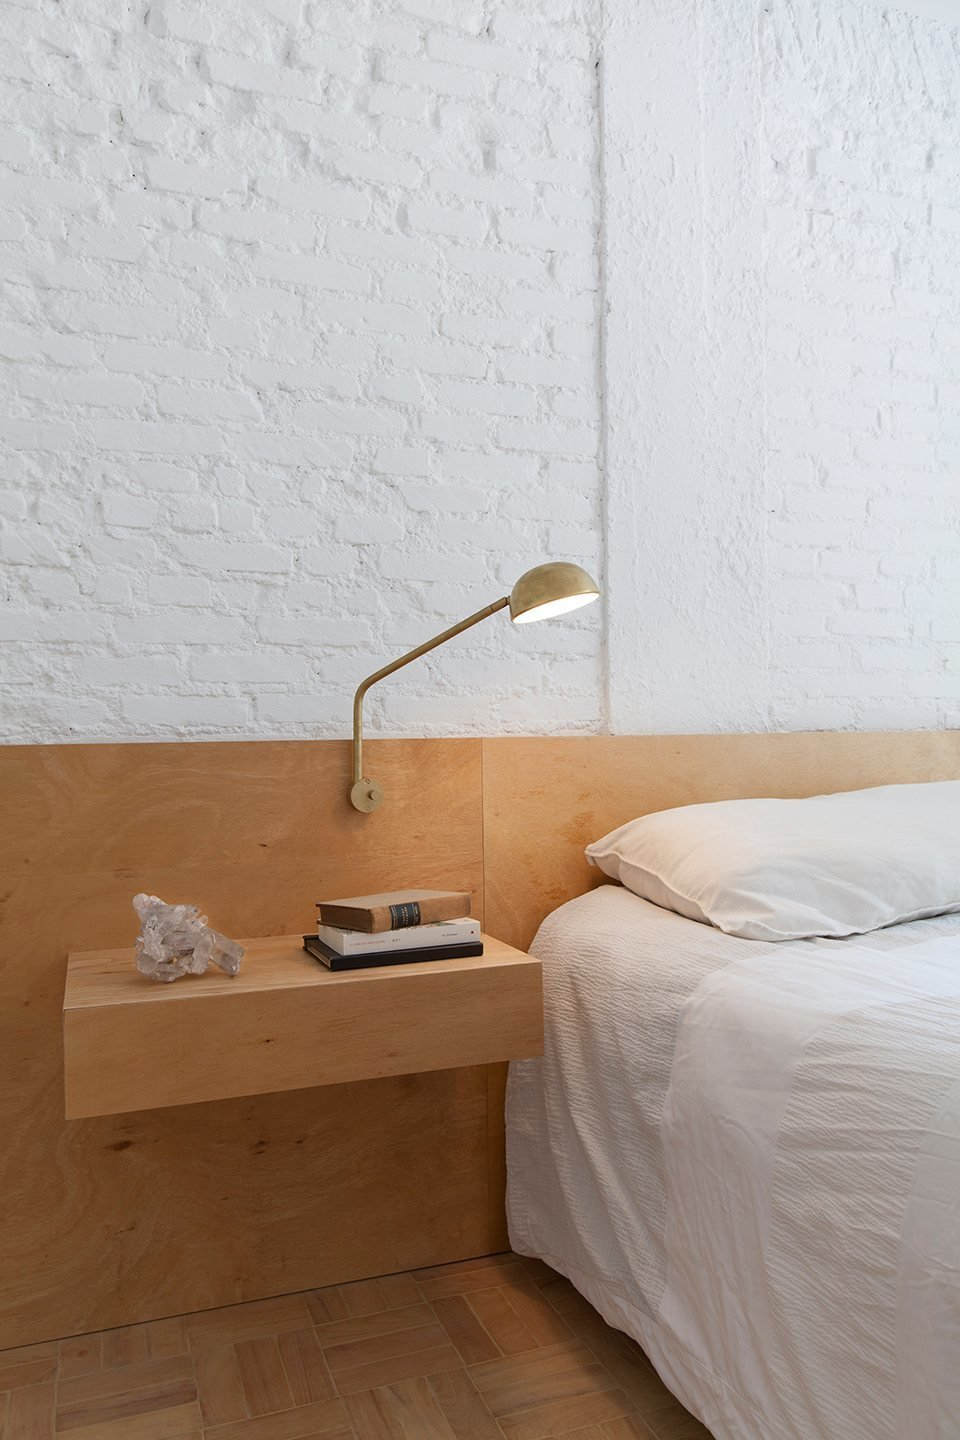 Bedroom, Medium Hardwood Floor, Night Stands, Bed, and Table Lighting Plywood headboard and floating nightstand. Ap Cobogó by Alan Chu. © Djan Chu.  upinteriors.com/go/sph59  Photos from Bolinas